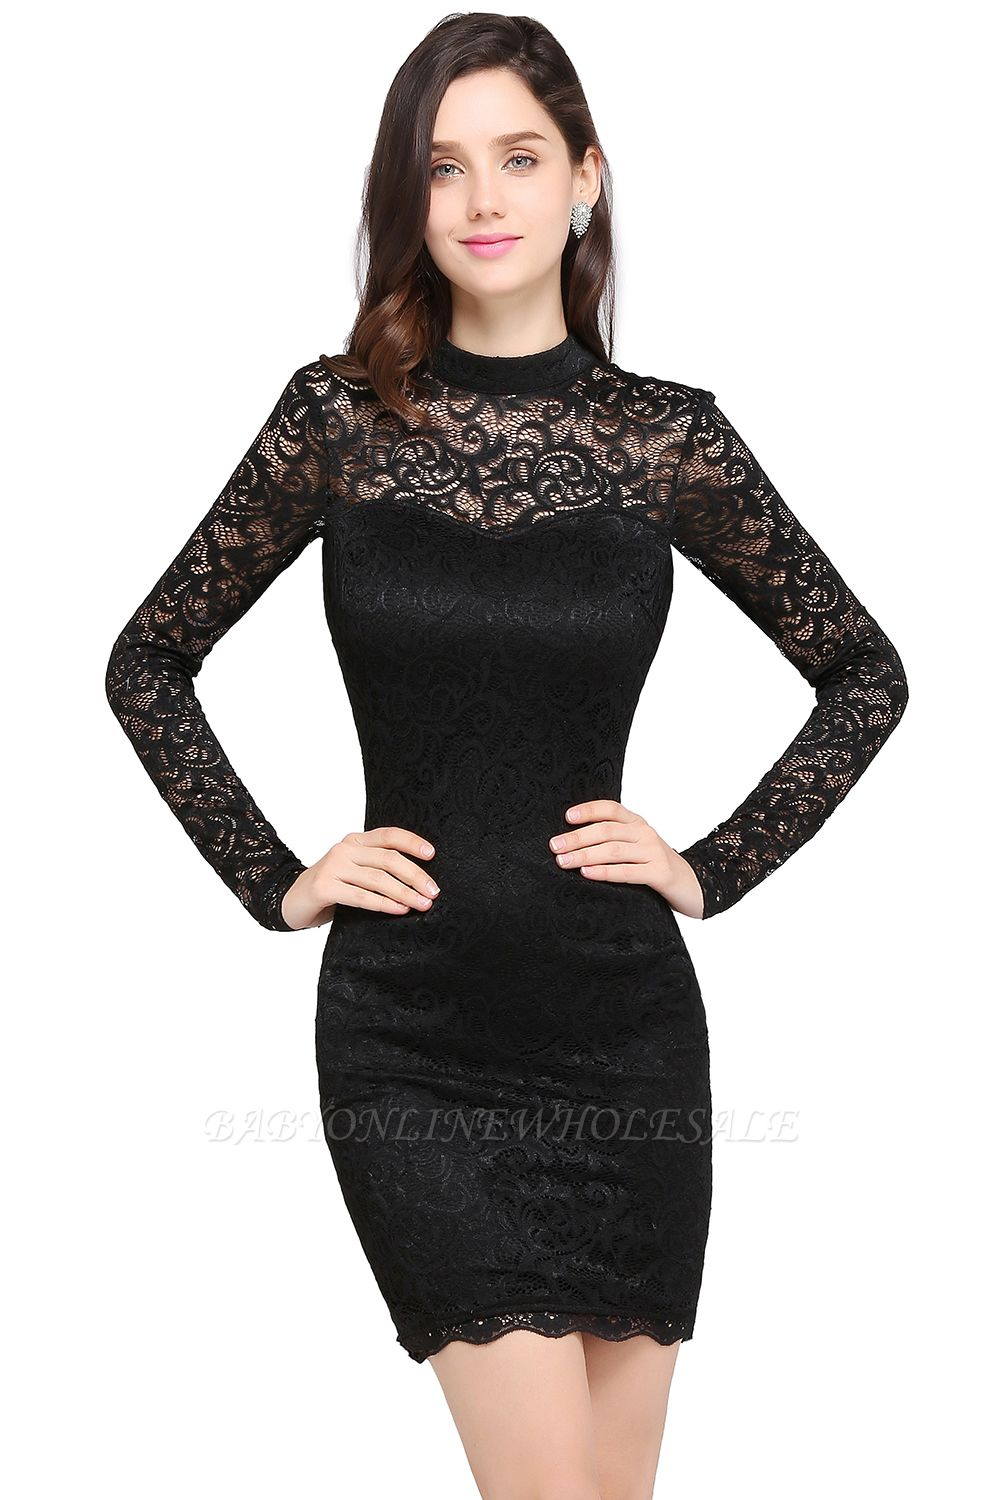 ARYANNA | Sheath High Neck Short Black Lace Cocktail Dresses